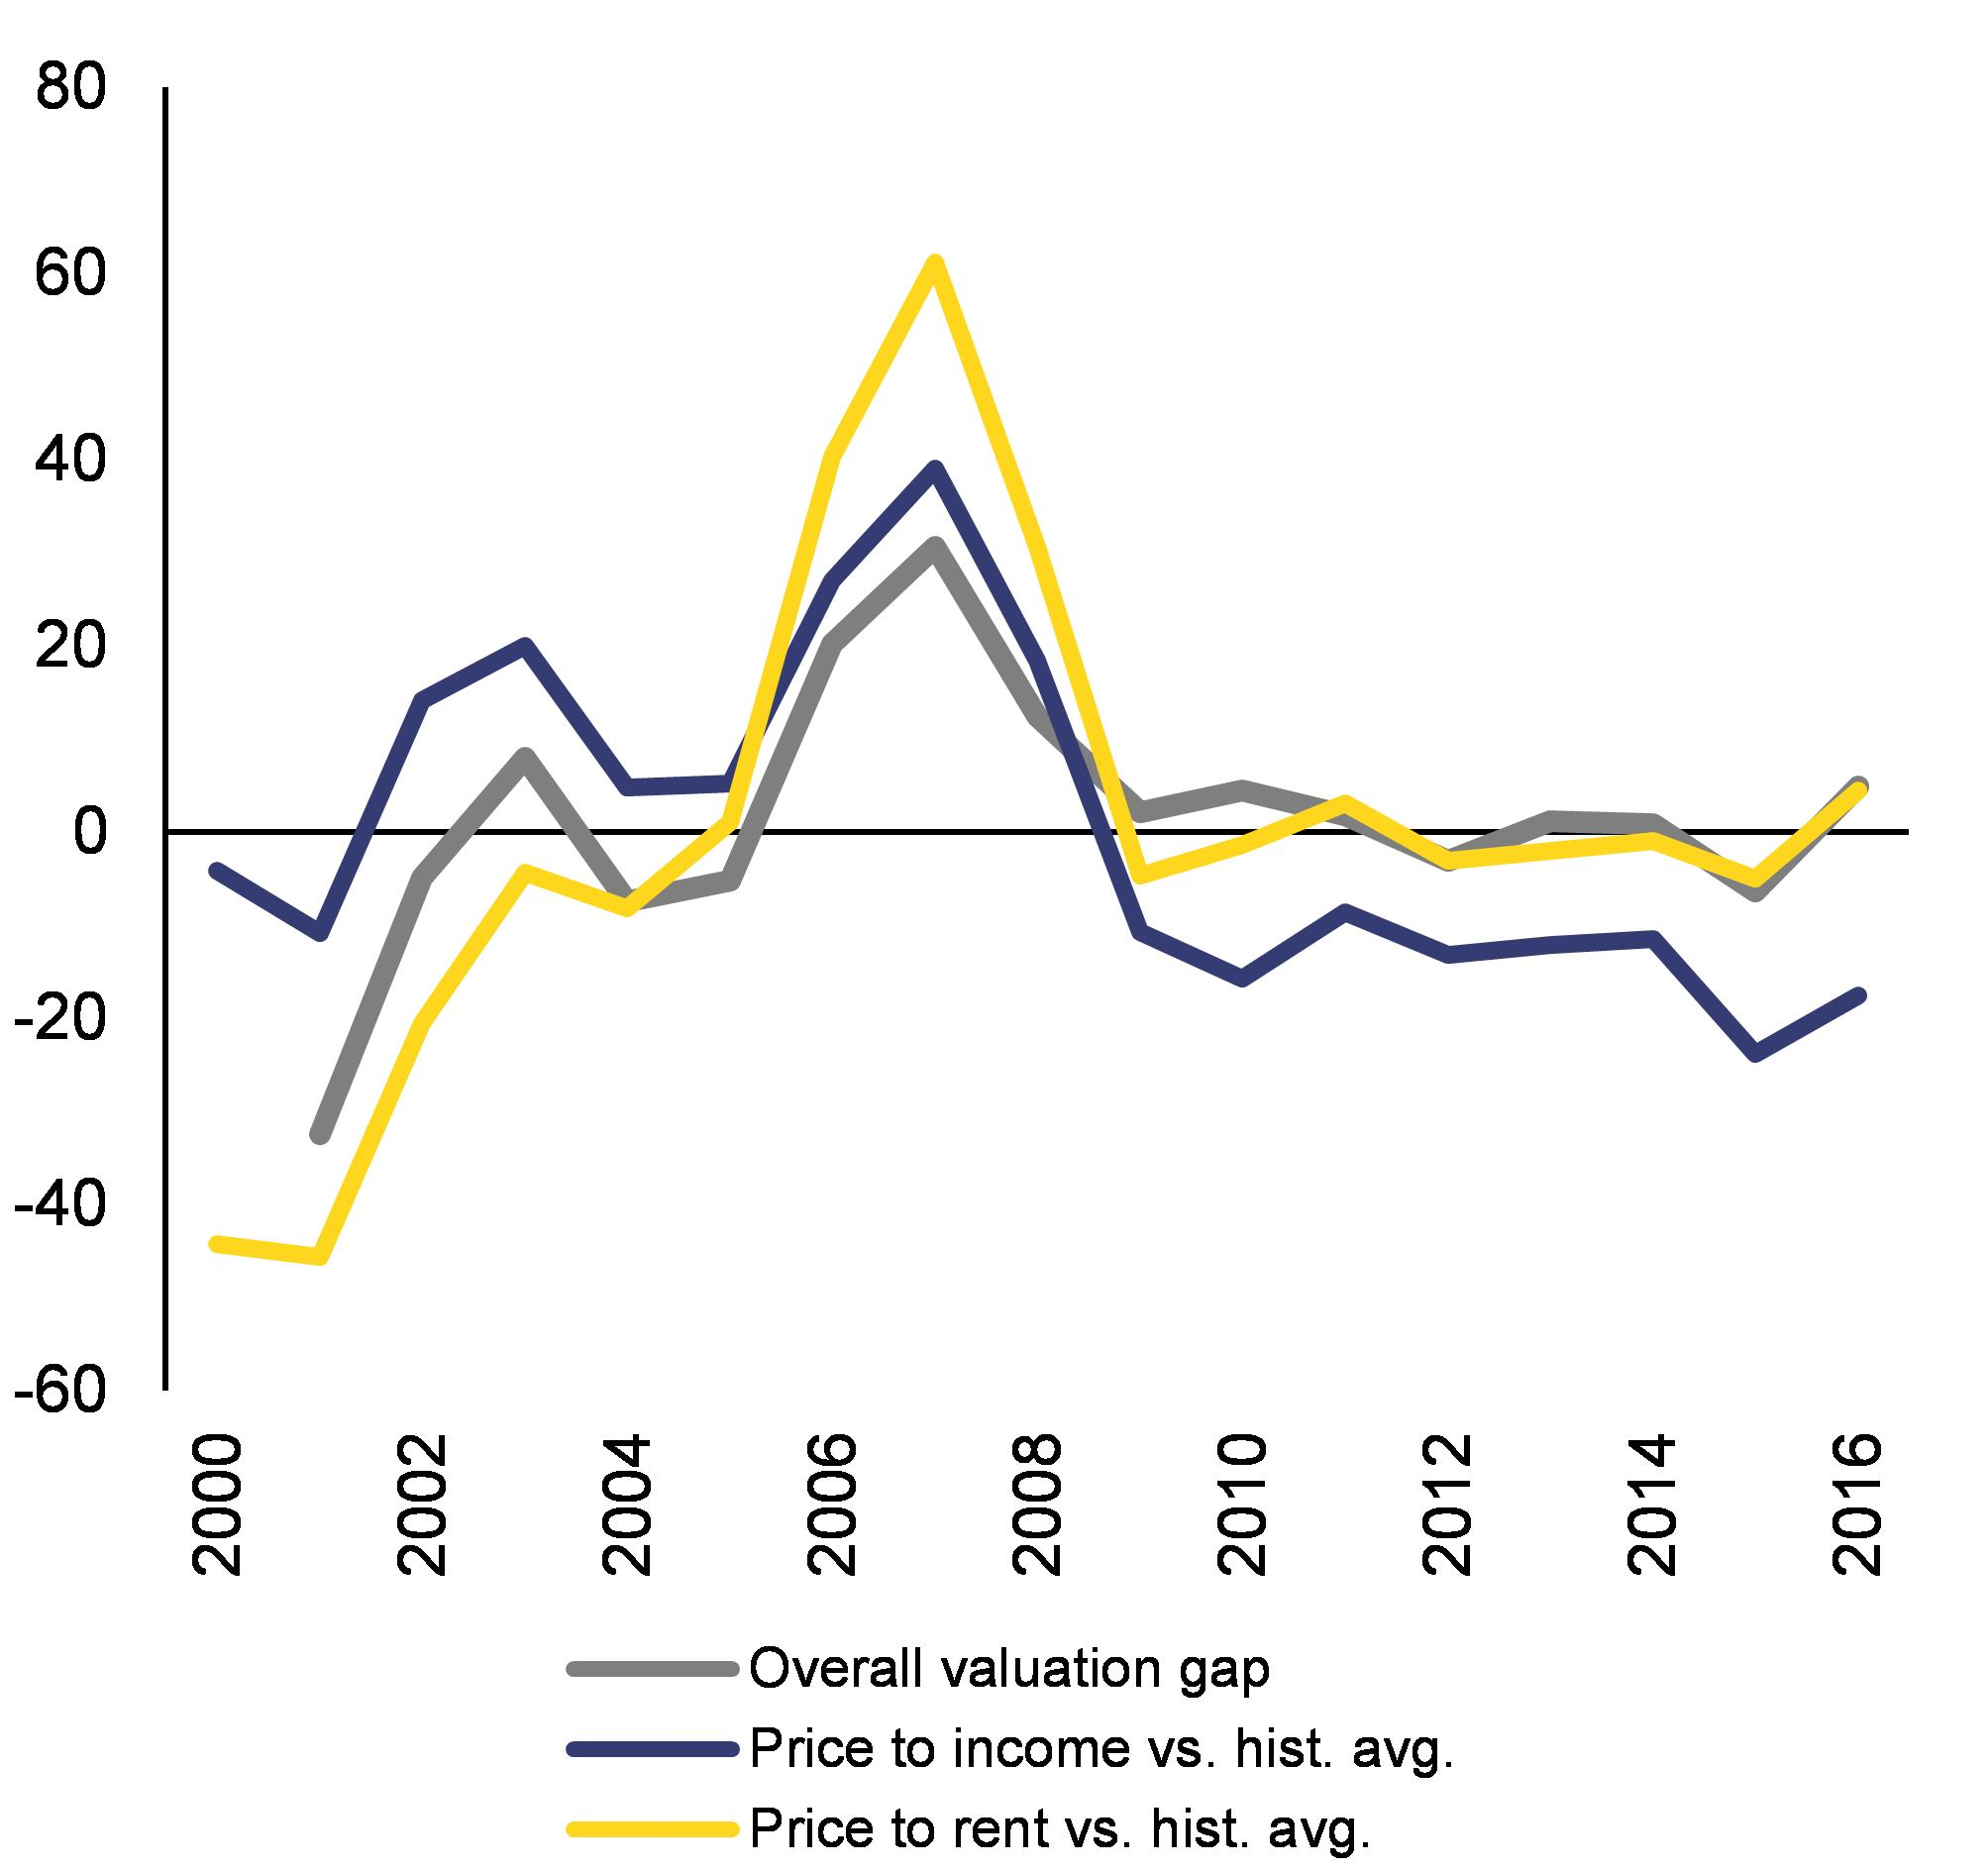 Eur lex 52018sc0212 en eur lex 1 overall valuation gap takes the average of a model based and historical averages based gap assessments fandeluxe Images